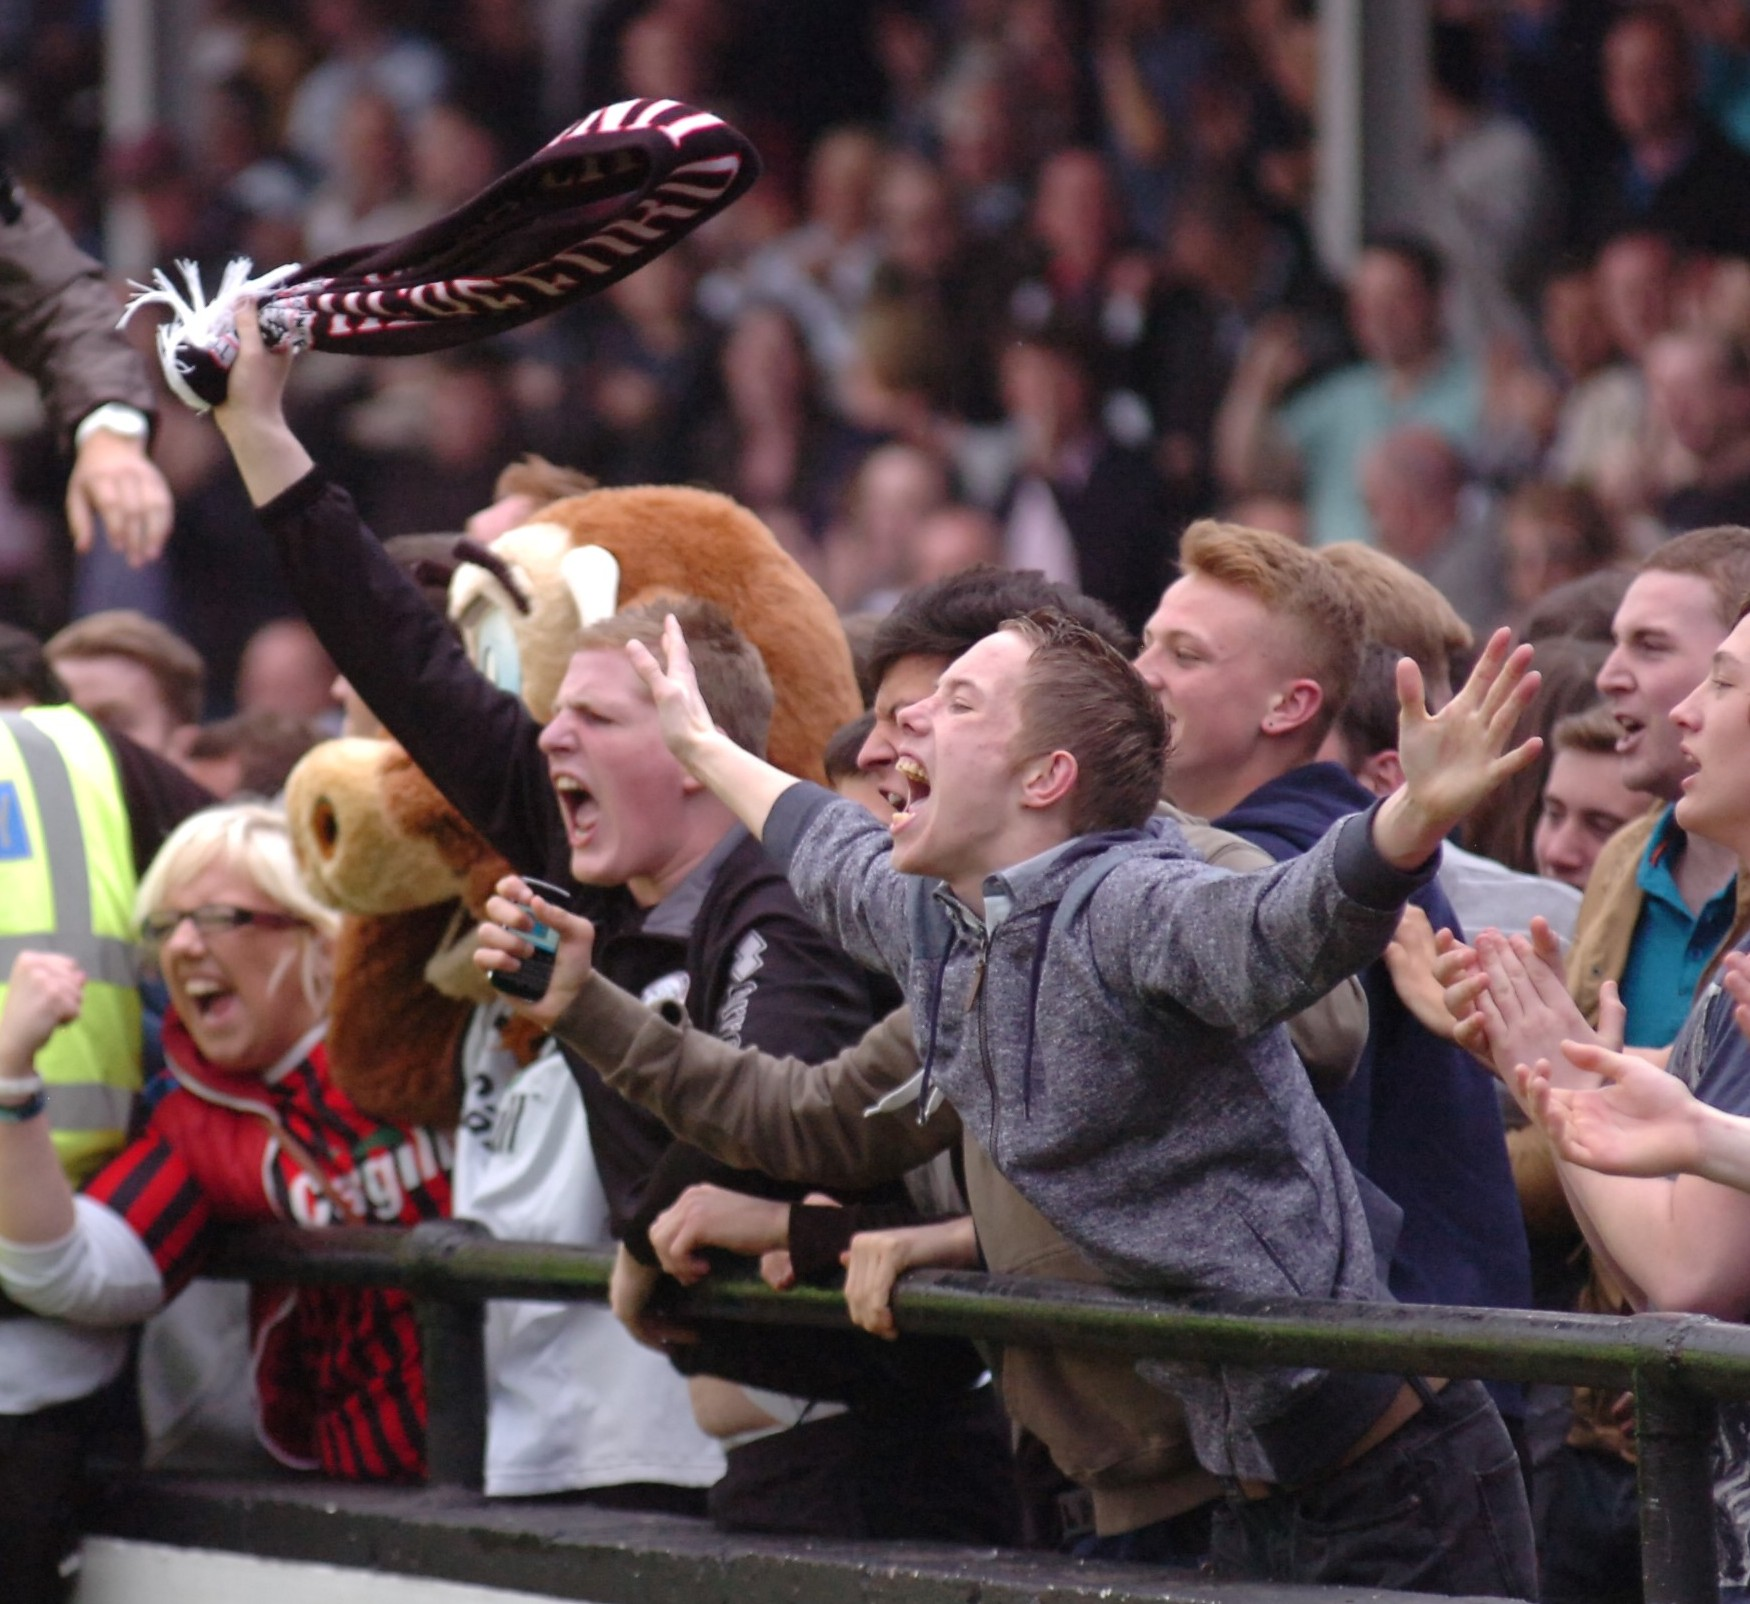 Fans must boycott Hereford United Football Cub, urge London Bulls supporters' group